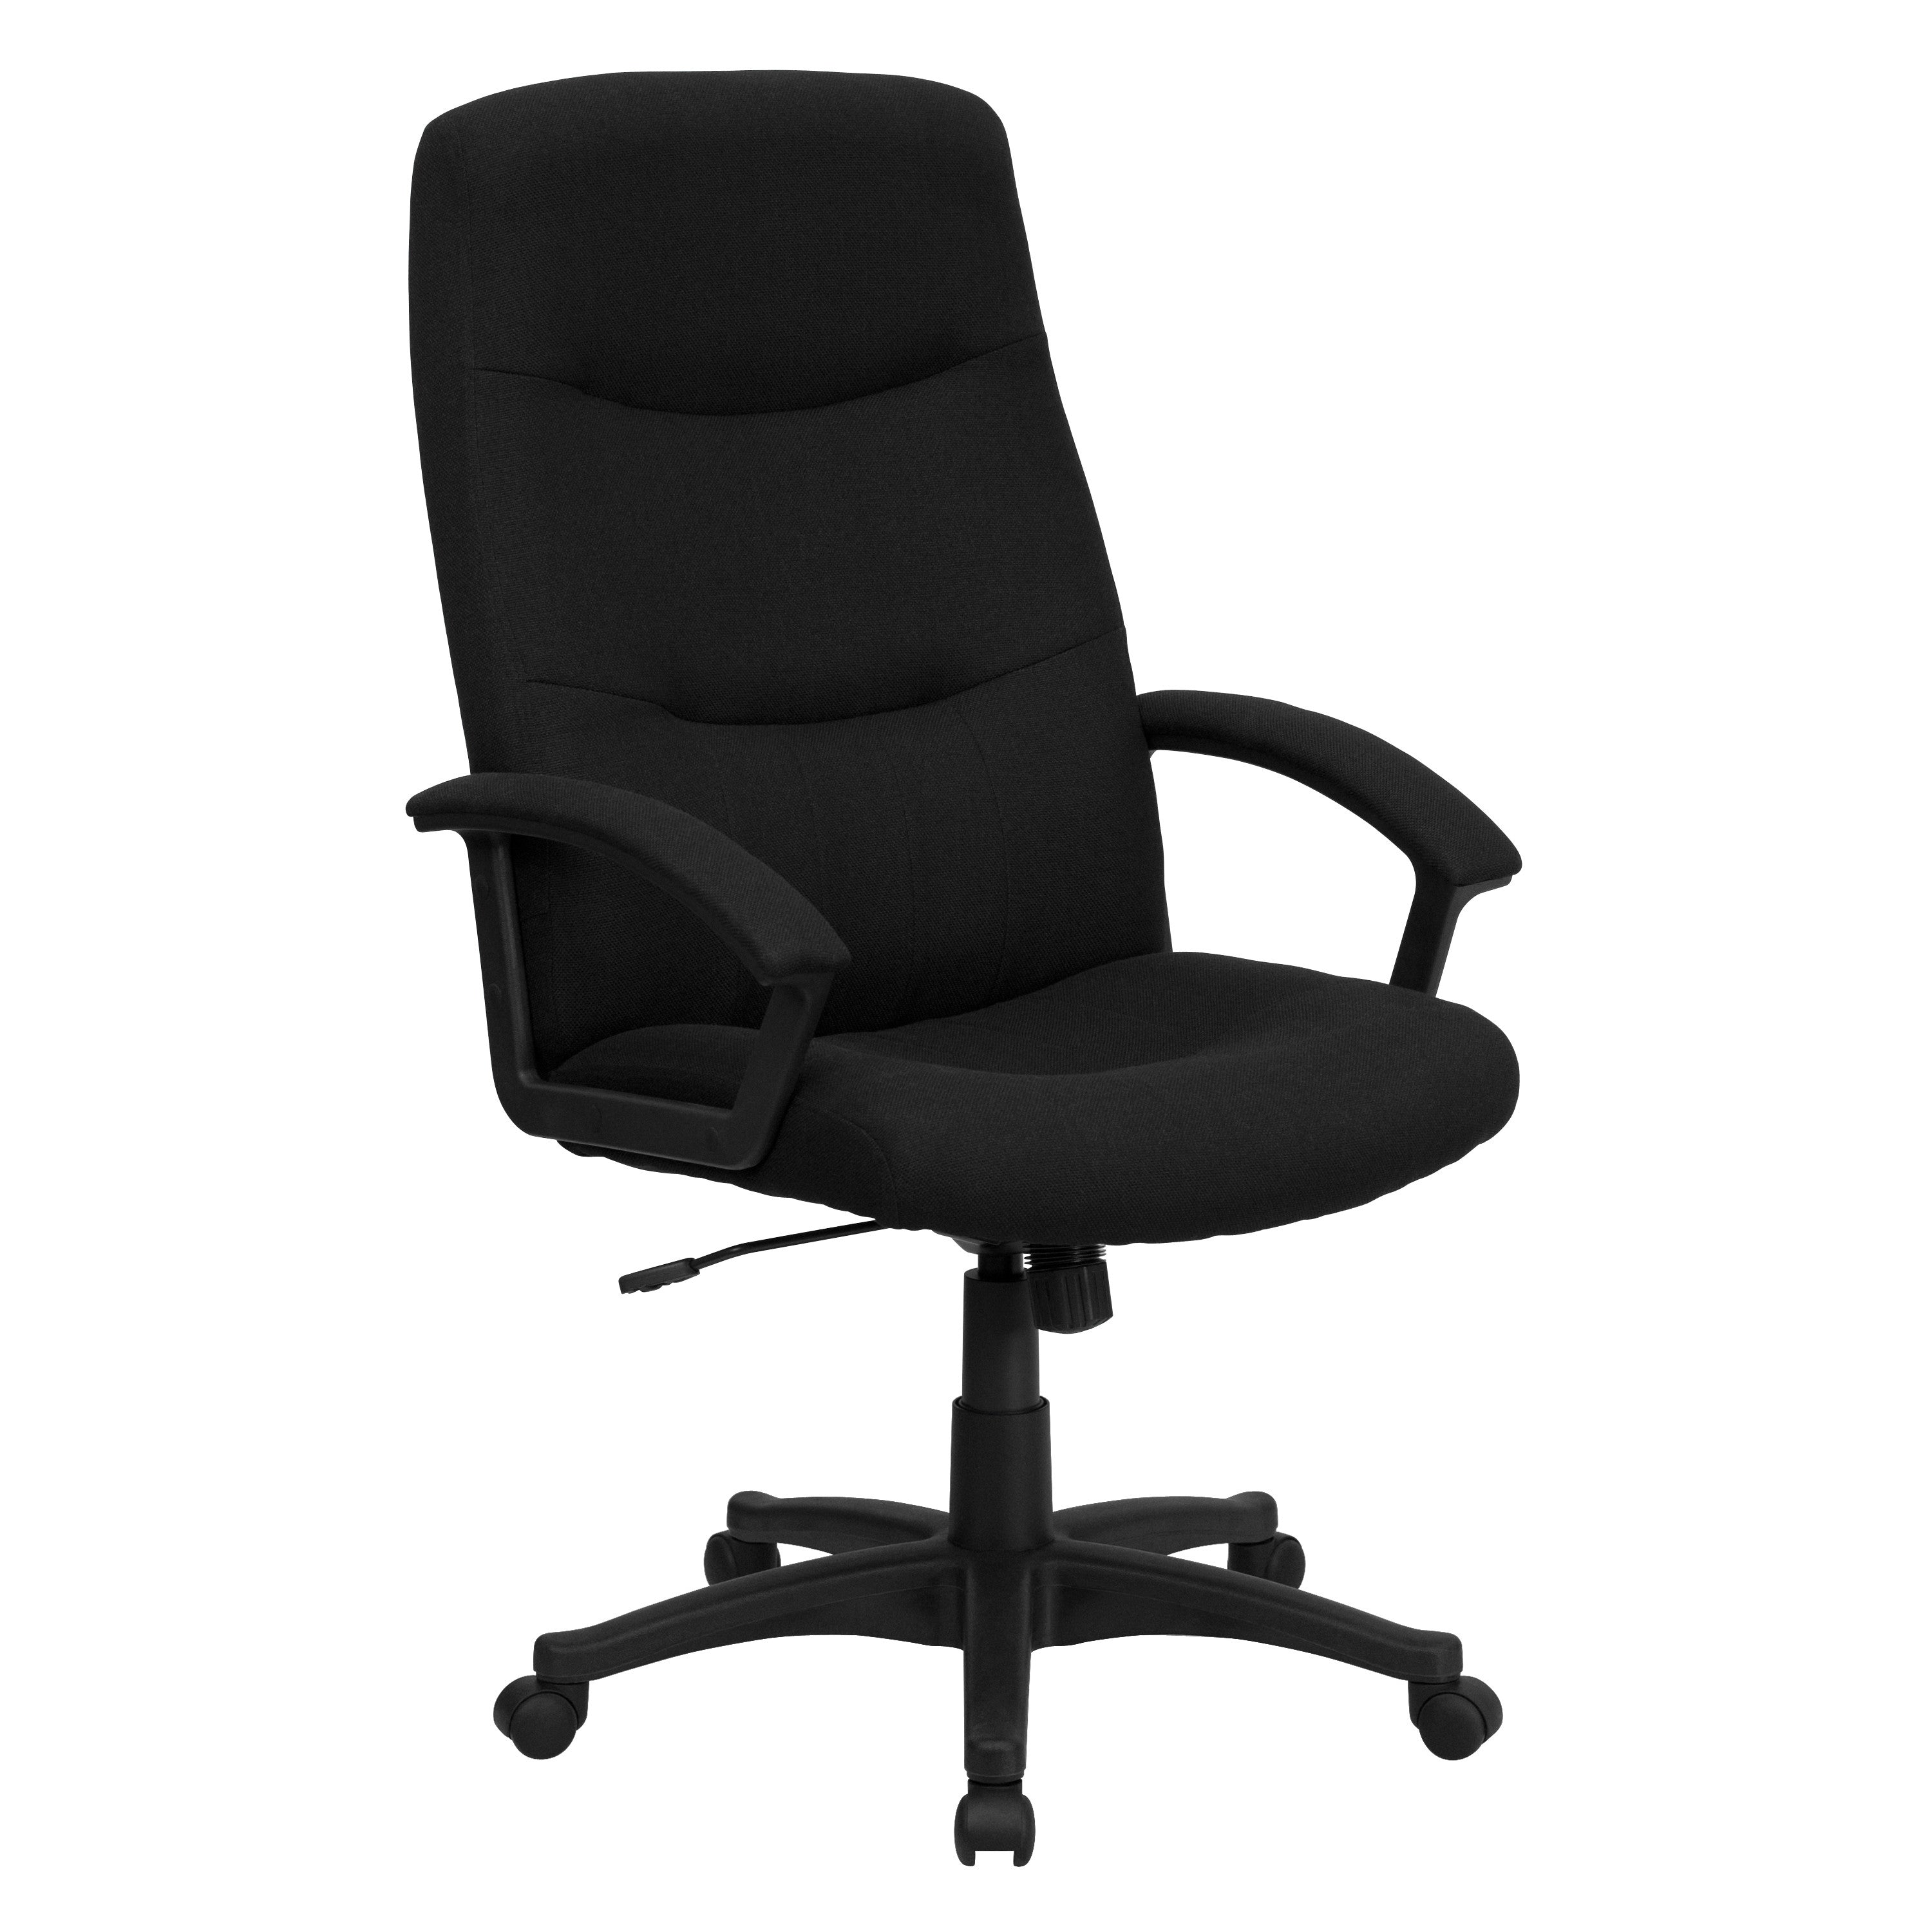 Executive Office Chairs Great for Small Businesses and Home